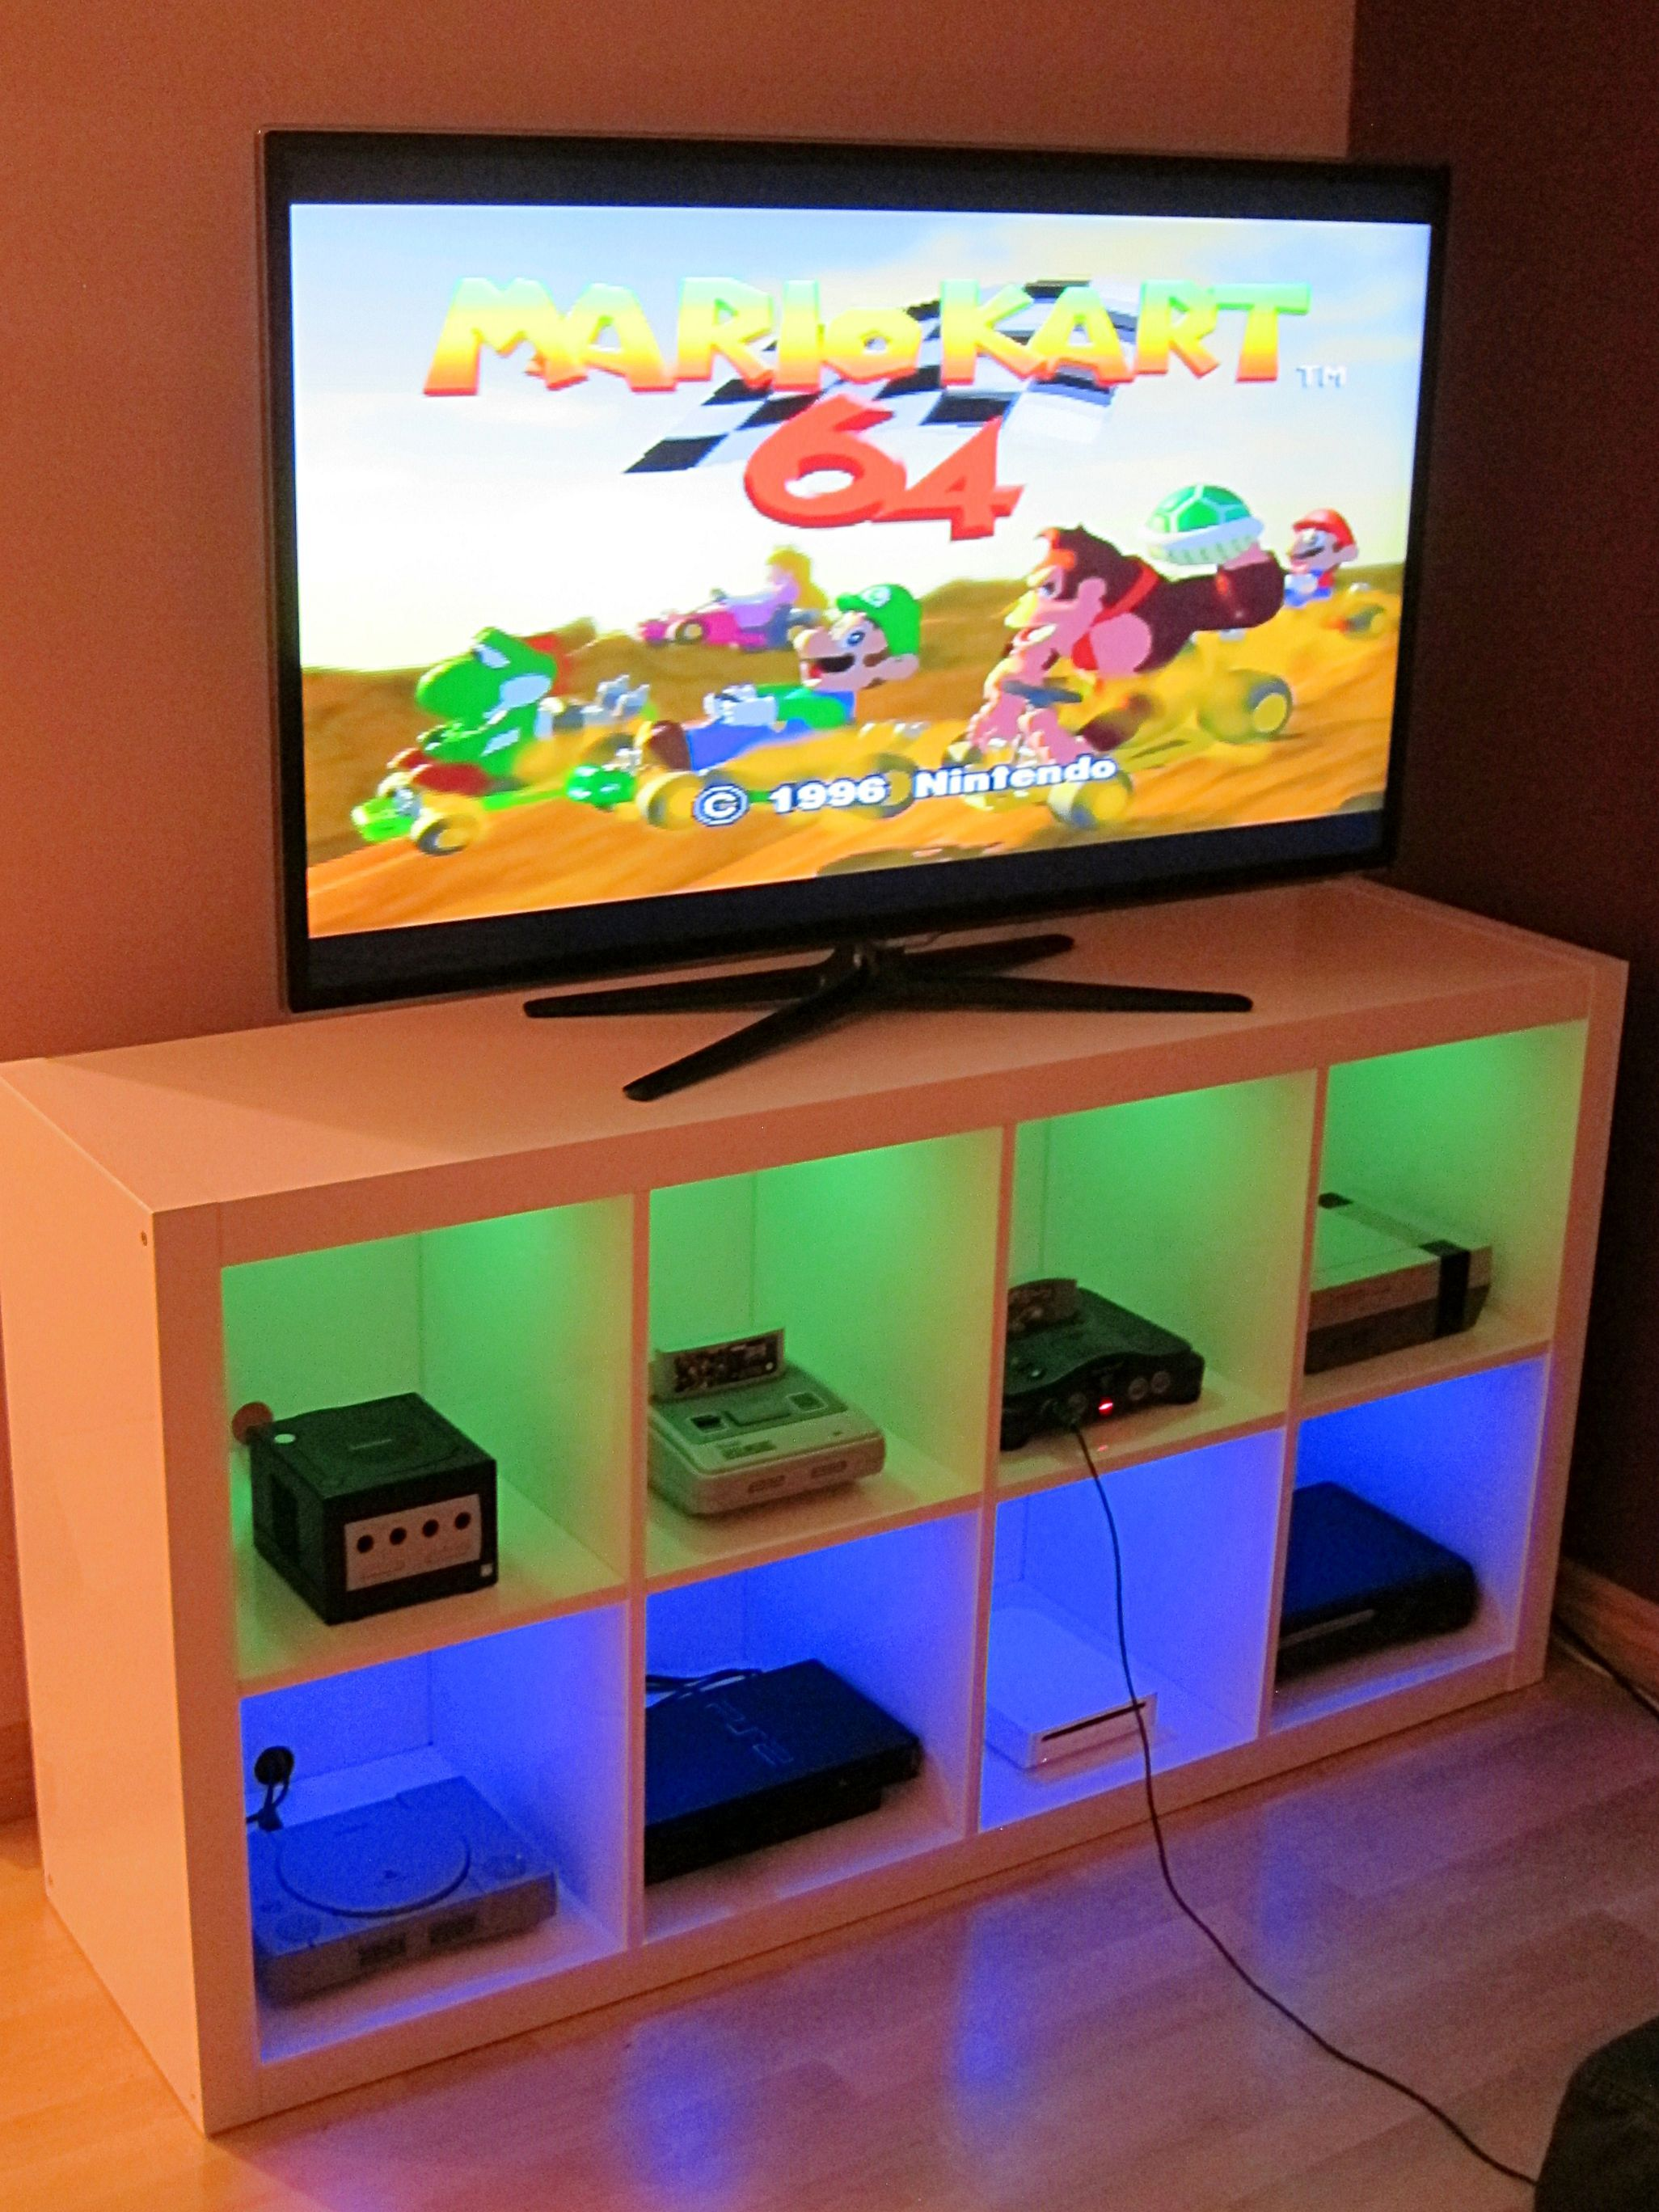 What are your top 5 video games? I modified an Ikea bookshelf to make a console cabinet ...